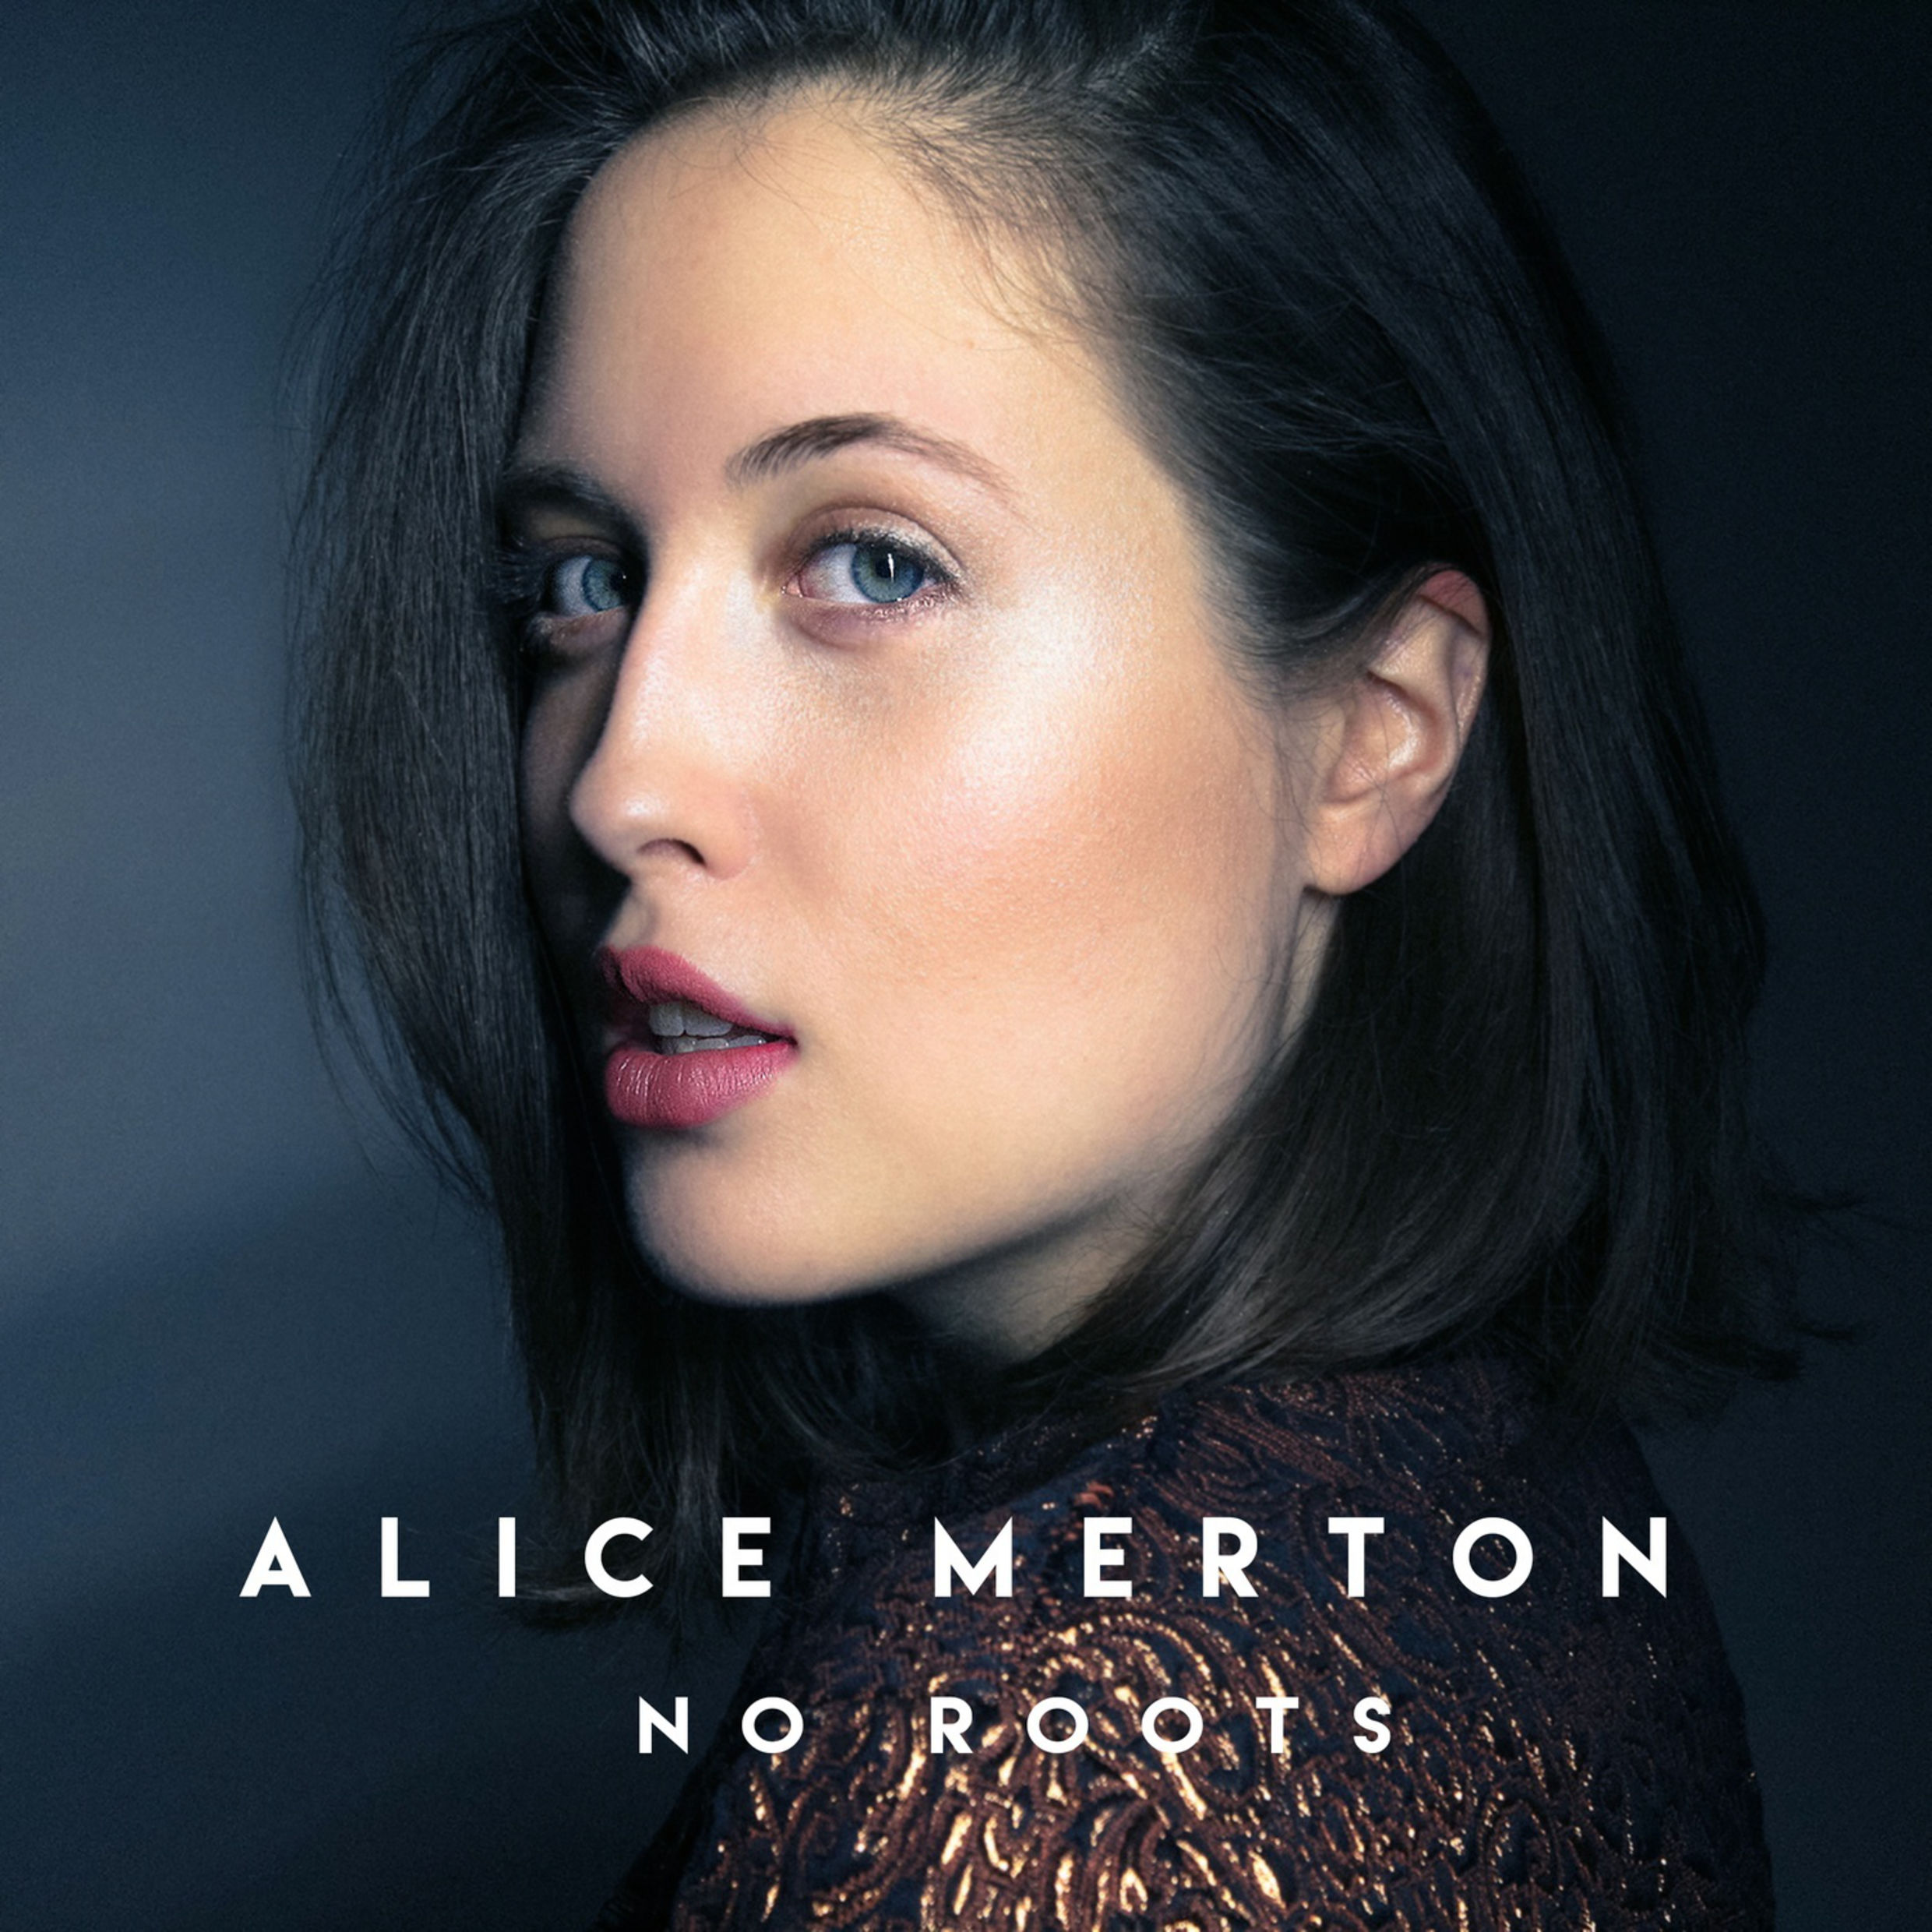 ALICE MERTON - No Roots (Paper Plane)